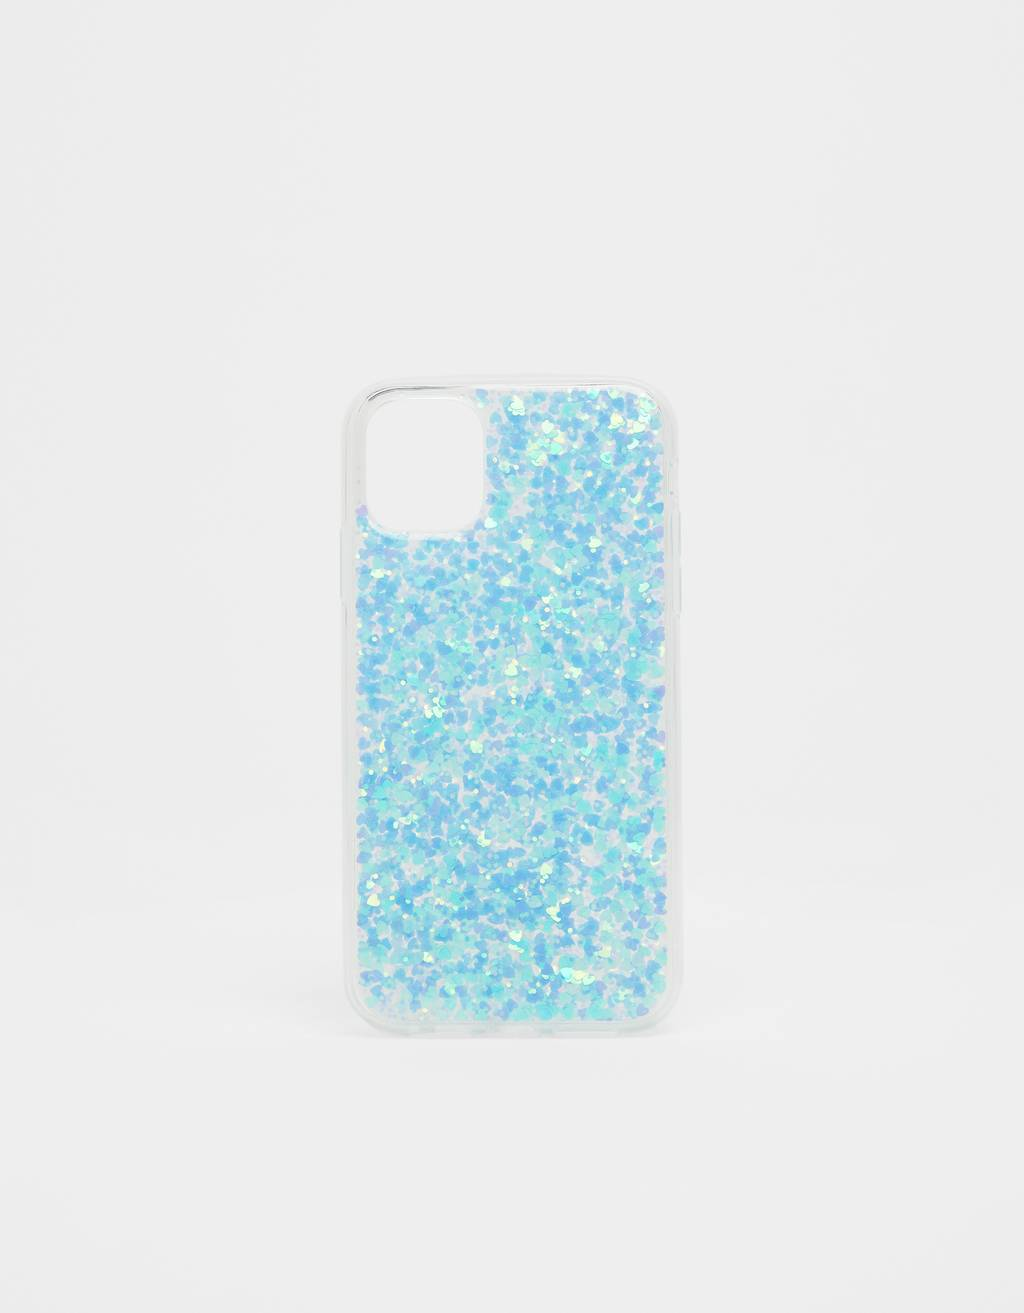 Glitter iPhone 11 case